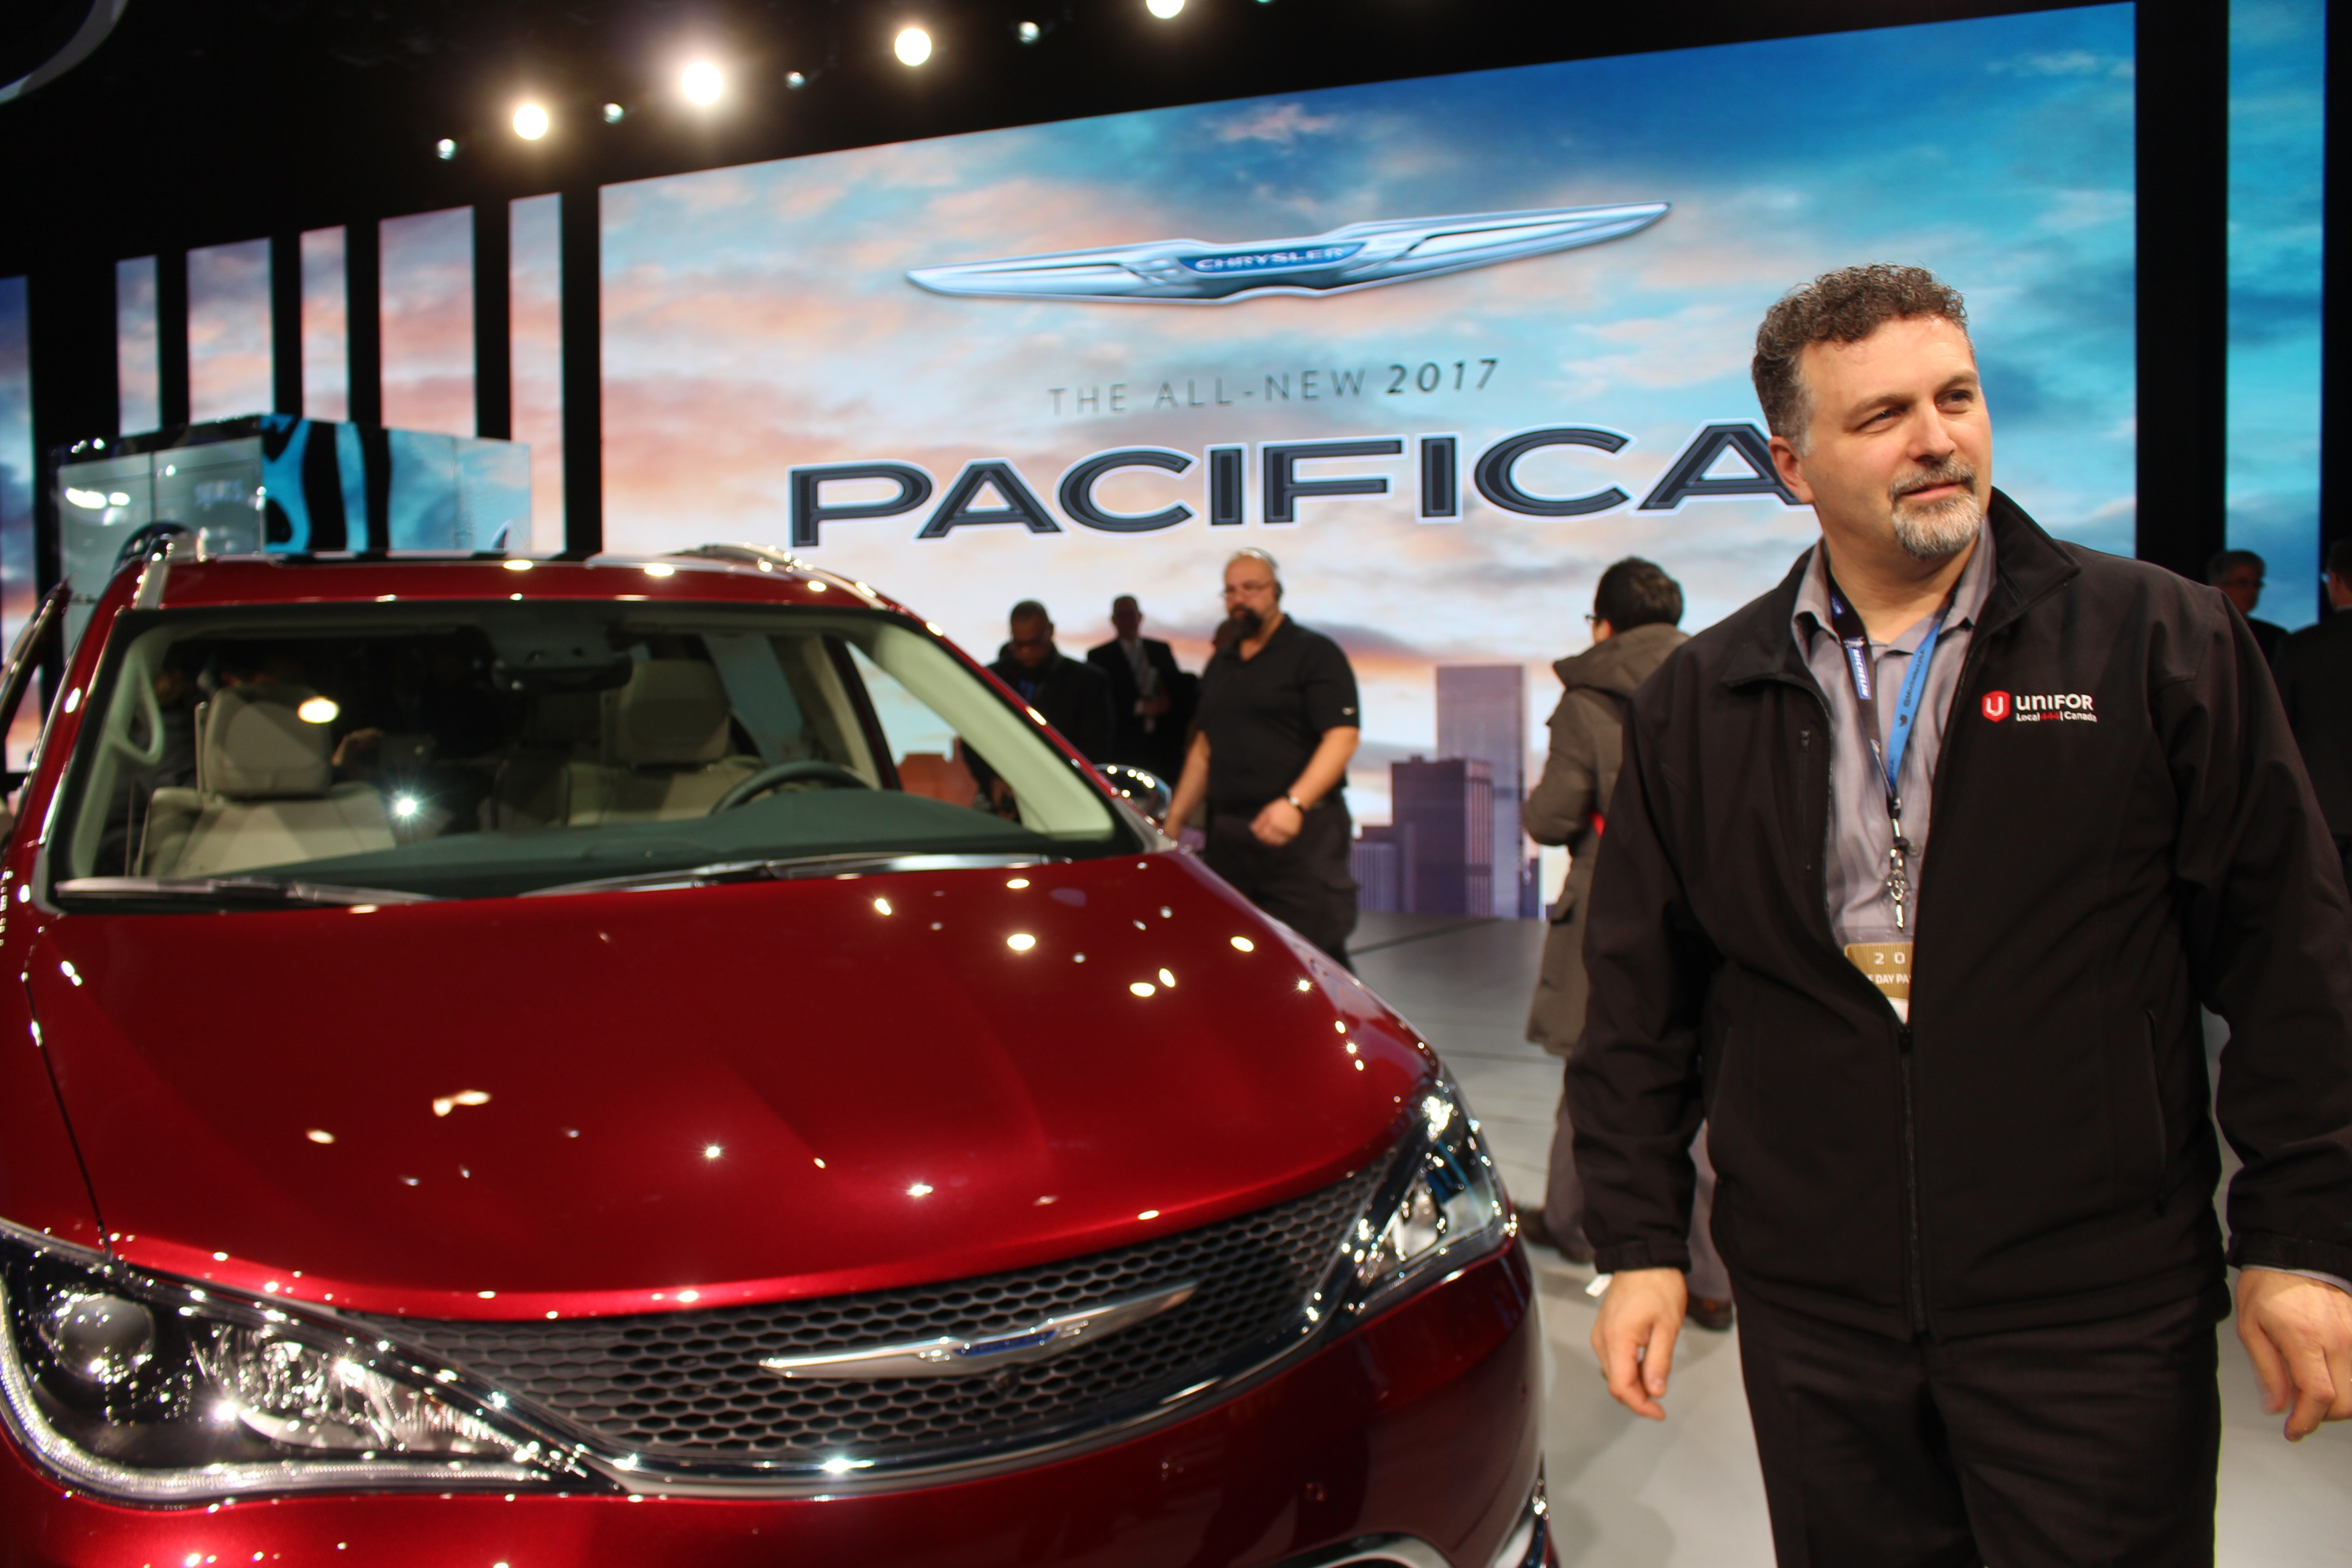 Unifor President Dino Chiodo poses with he Chrysler Pacifica unveiled at the North American International Auto Show 2016. (Photo by Maureen Revait)